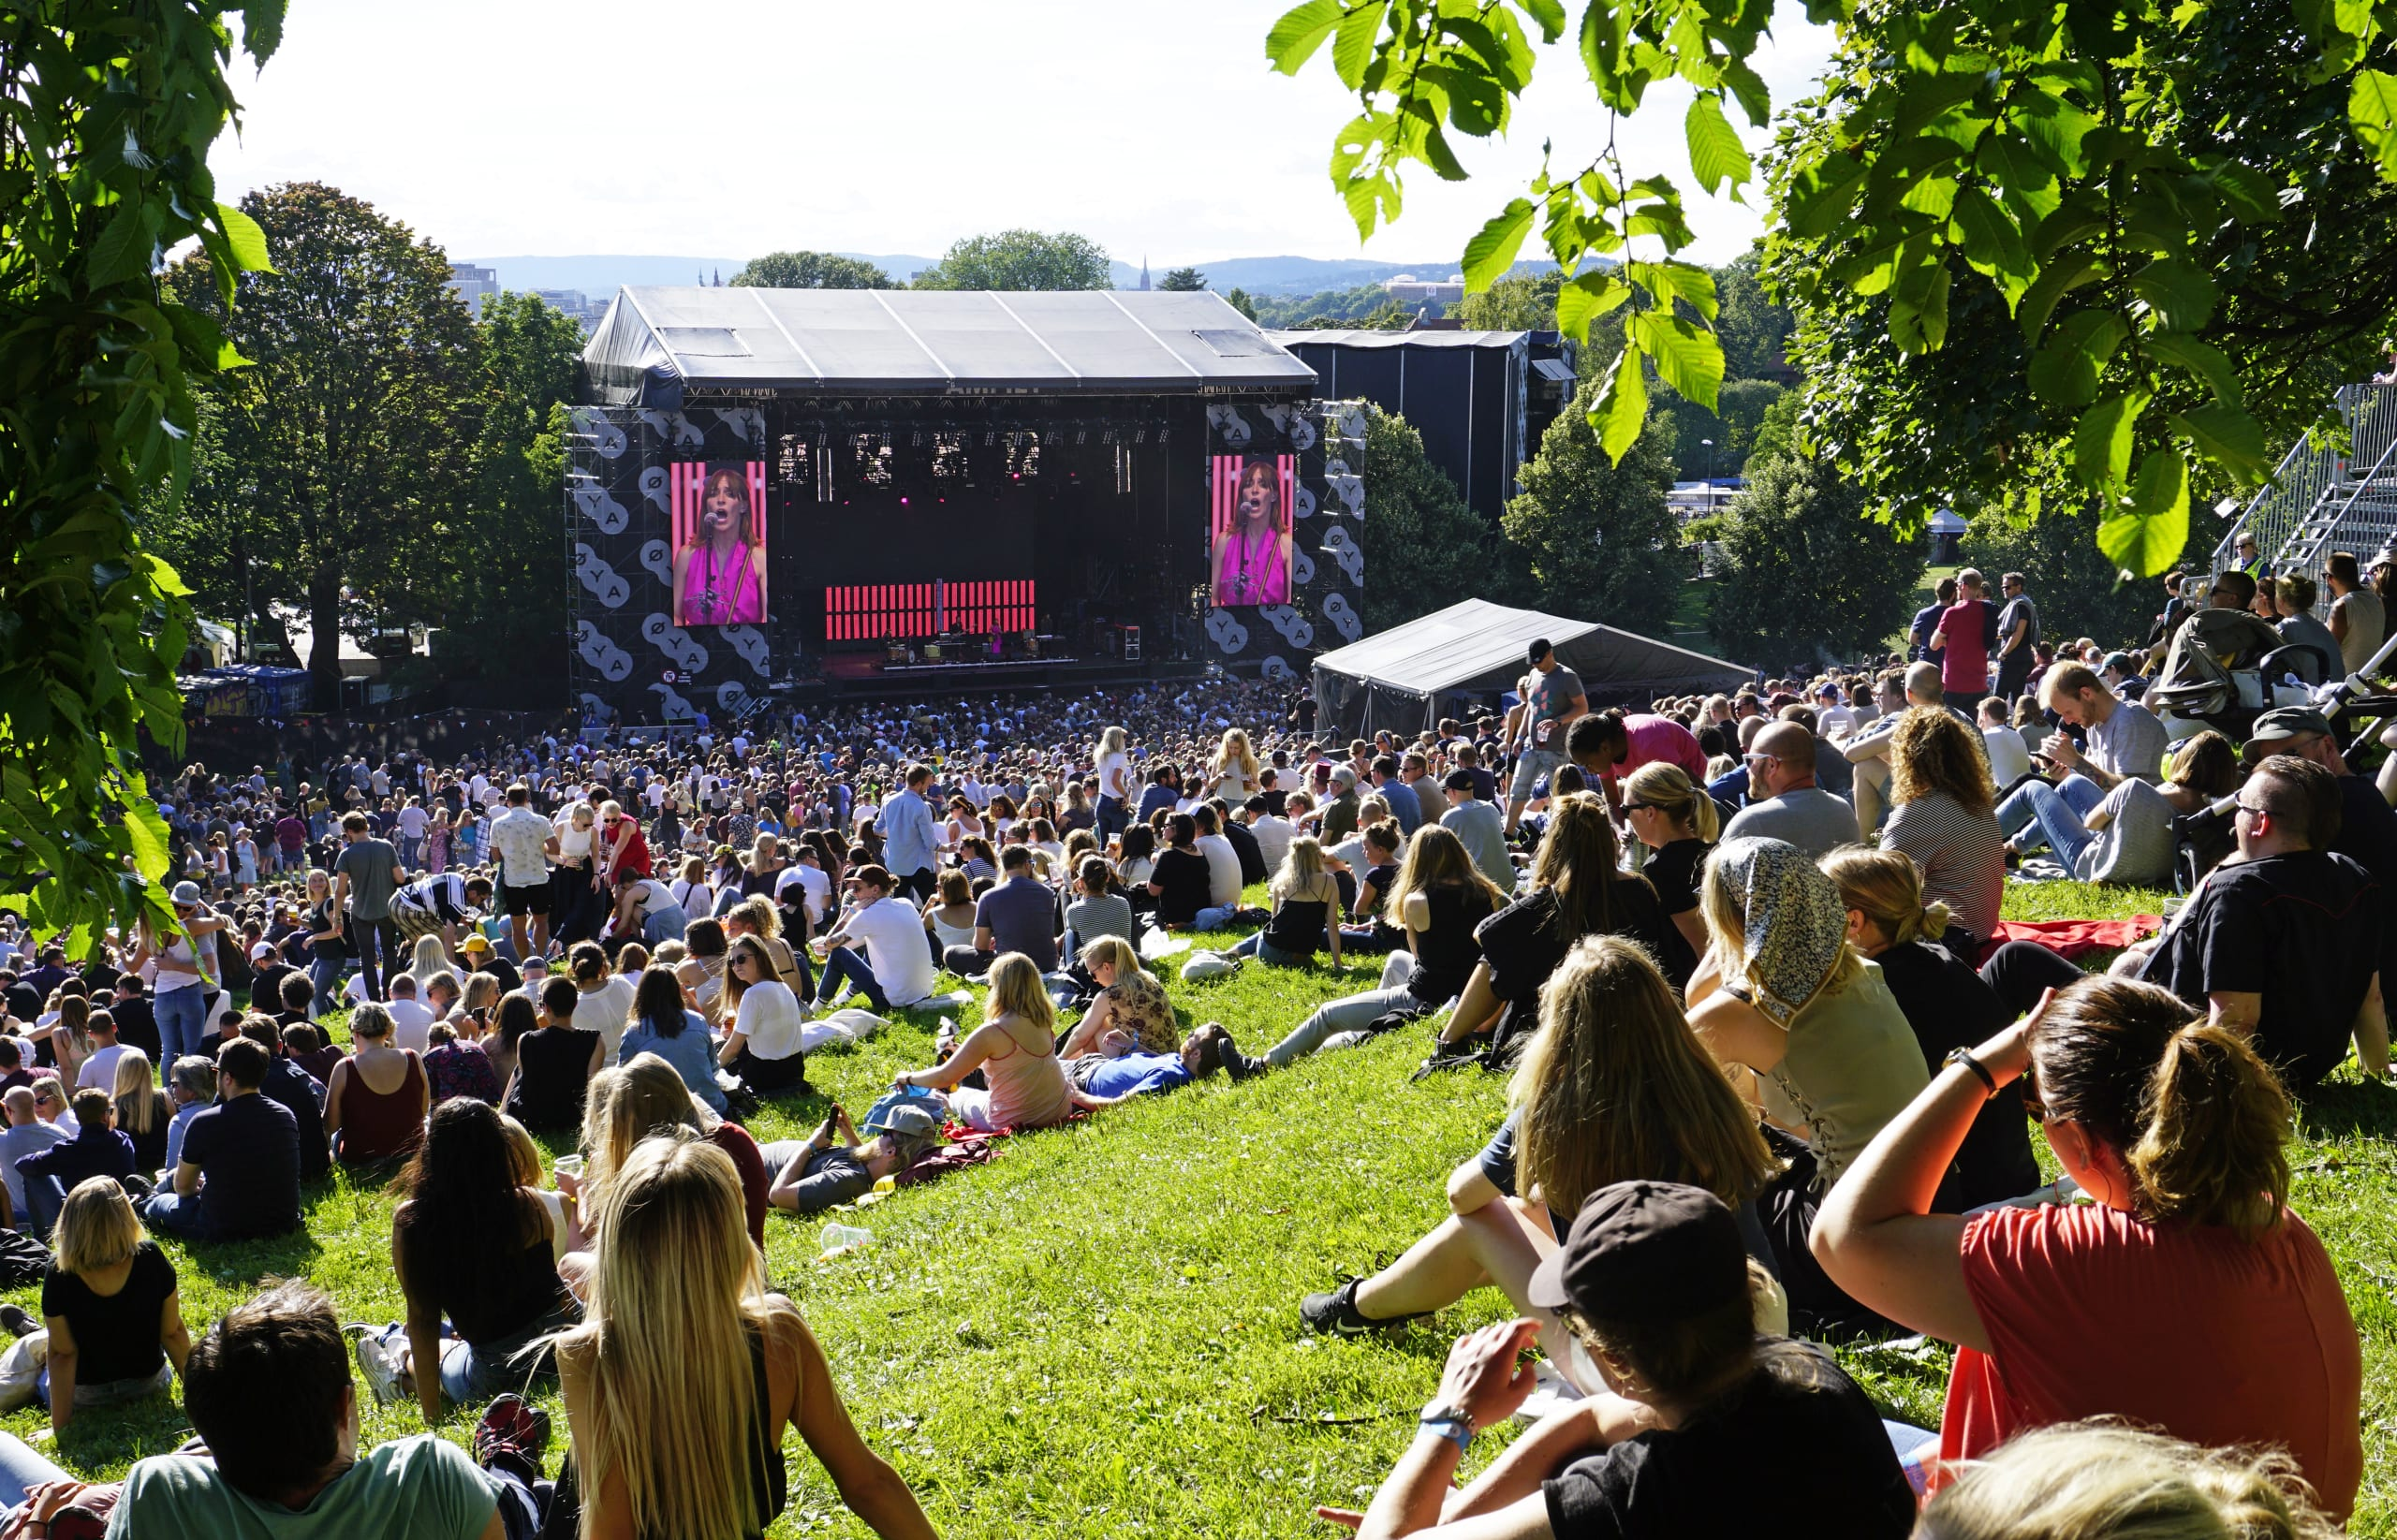 Oya Music Festival in Oslo